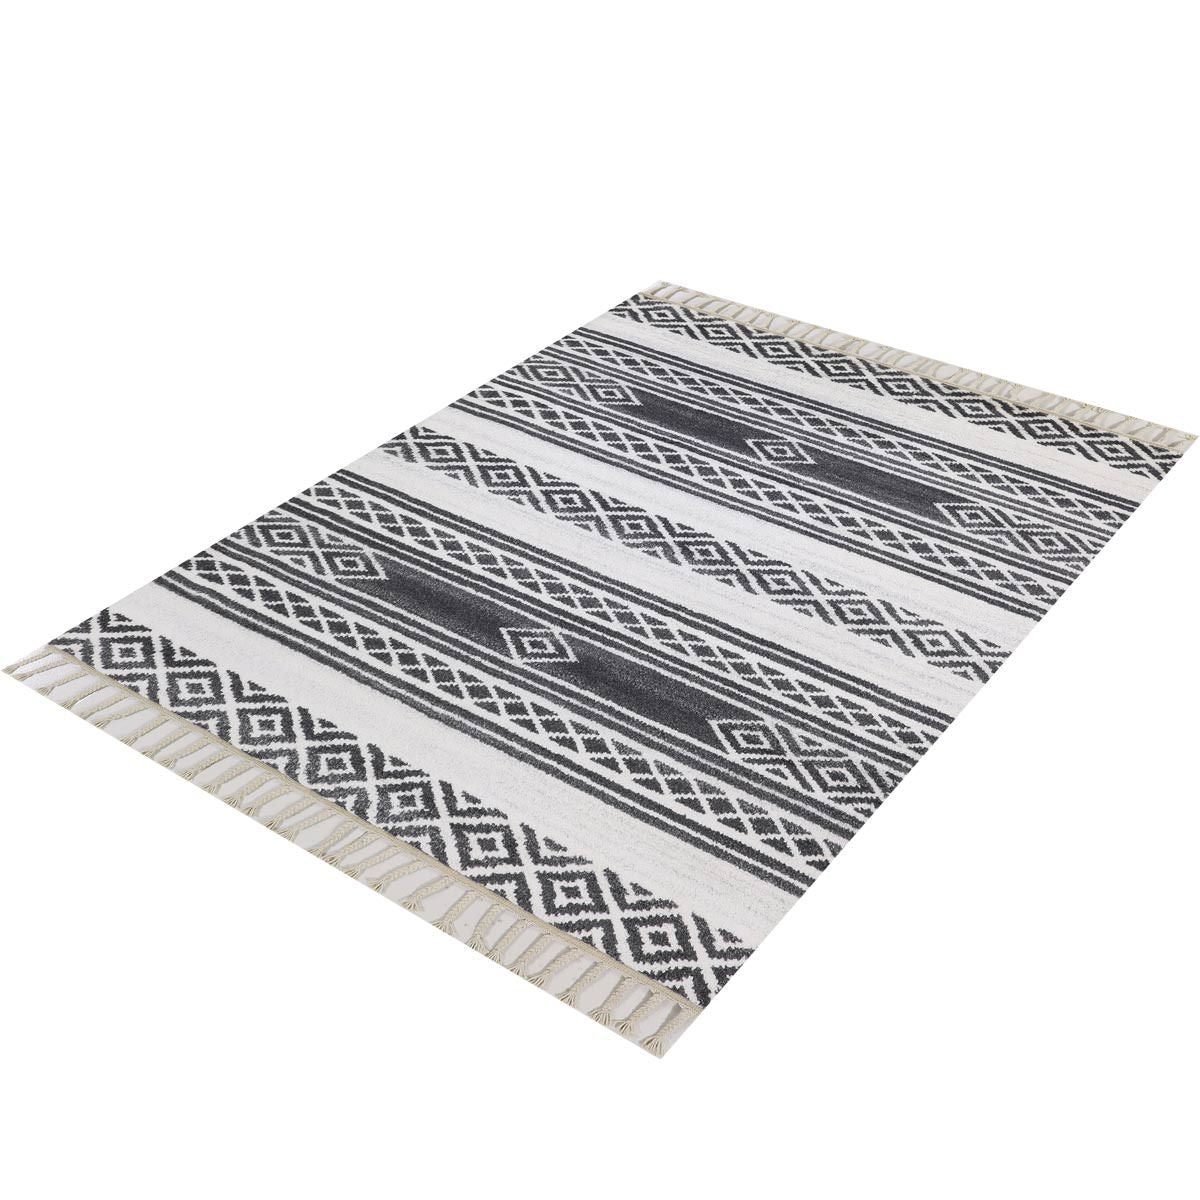 Moroccan Berber Rug 04 Dark Grey/White 3